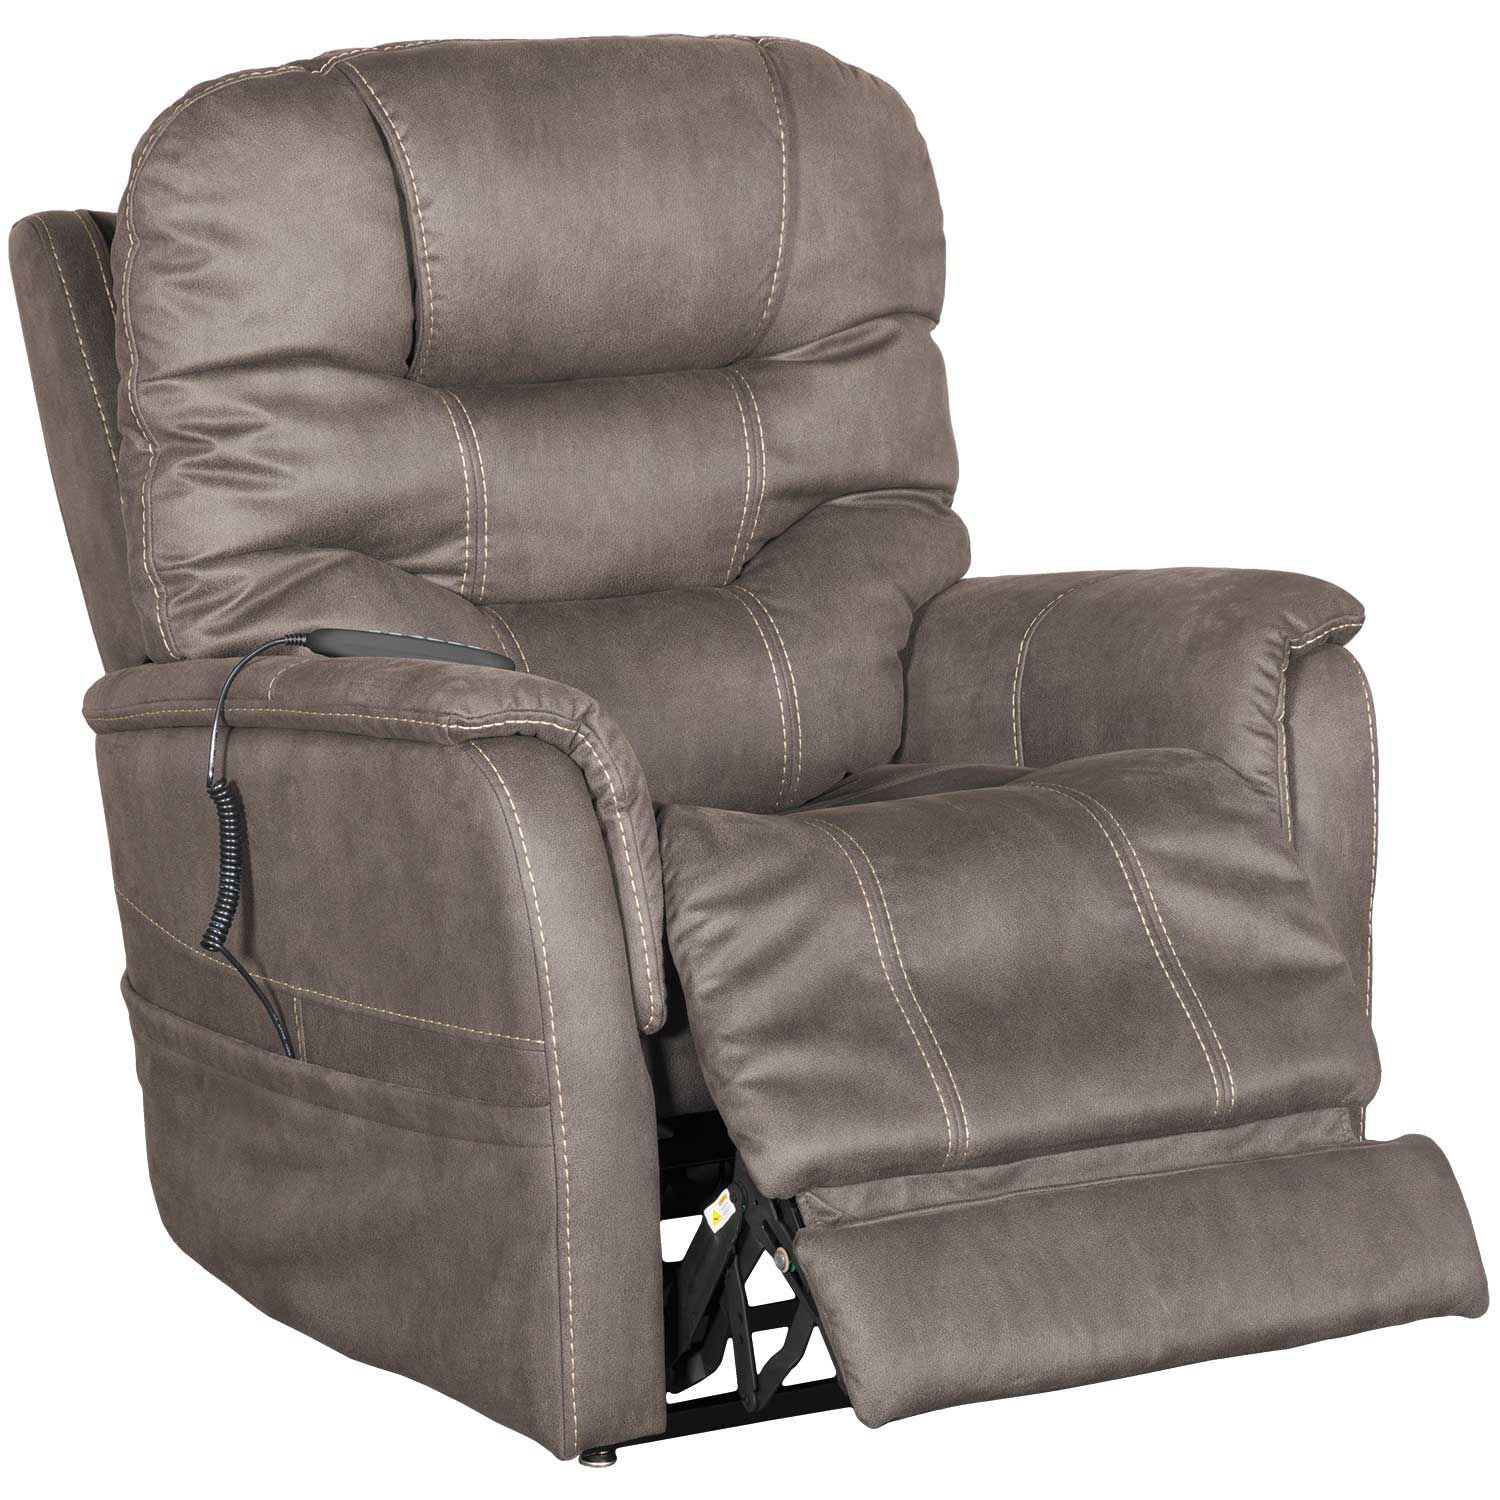 Picture of Ballister Power Lift Chair with Adjustable Headrest and Lumbar